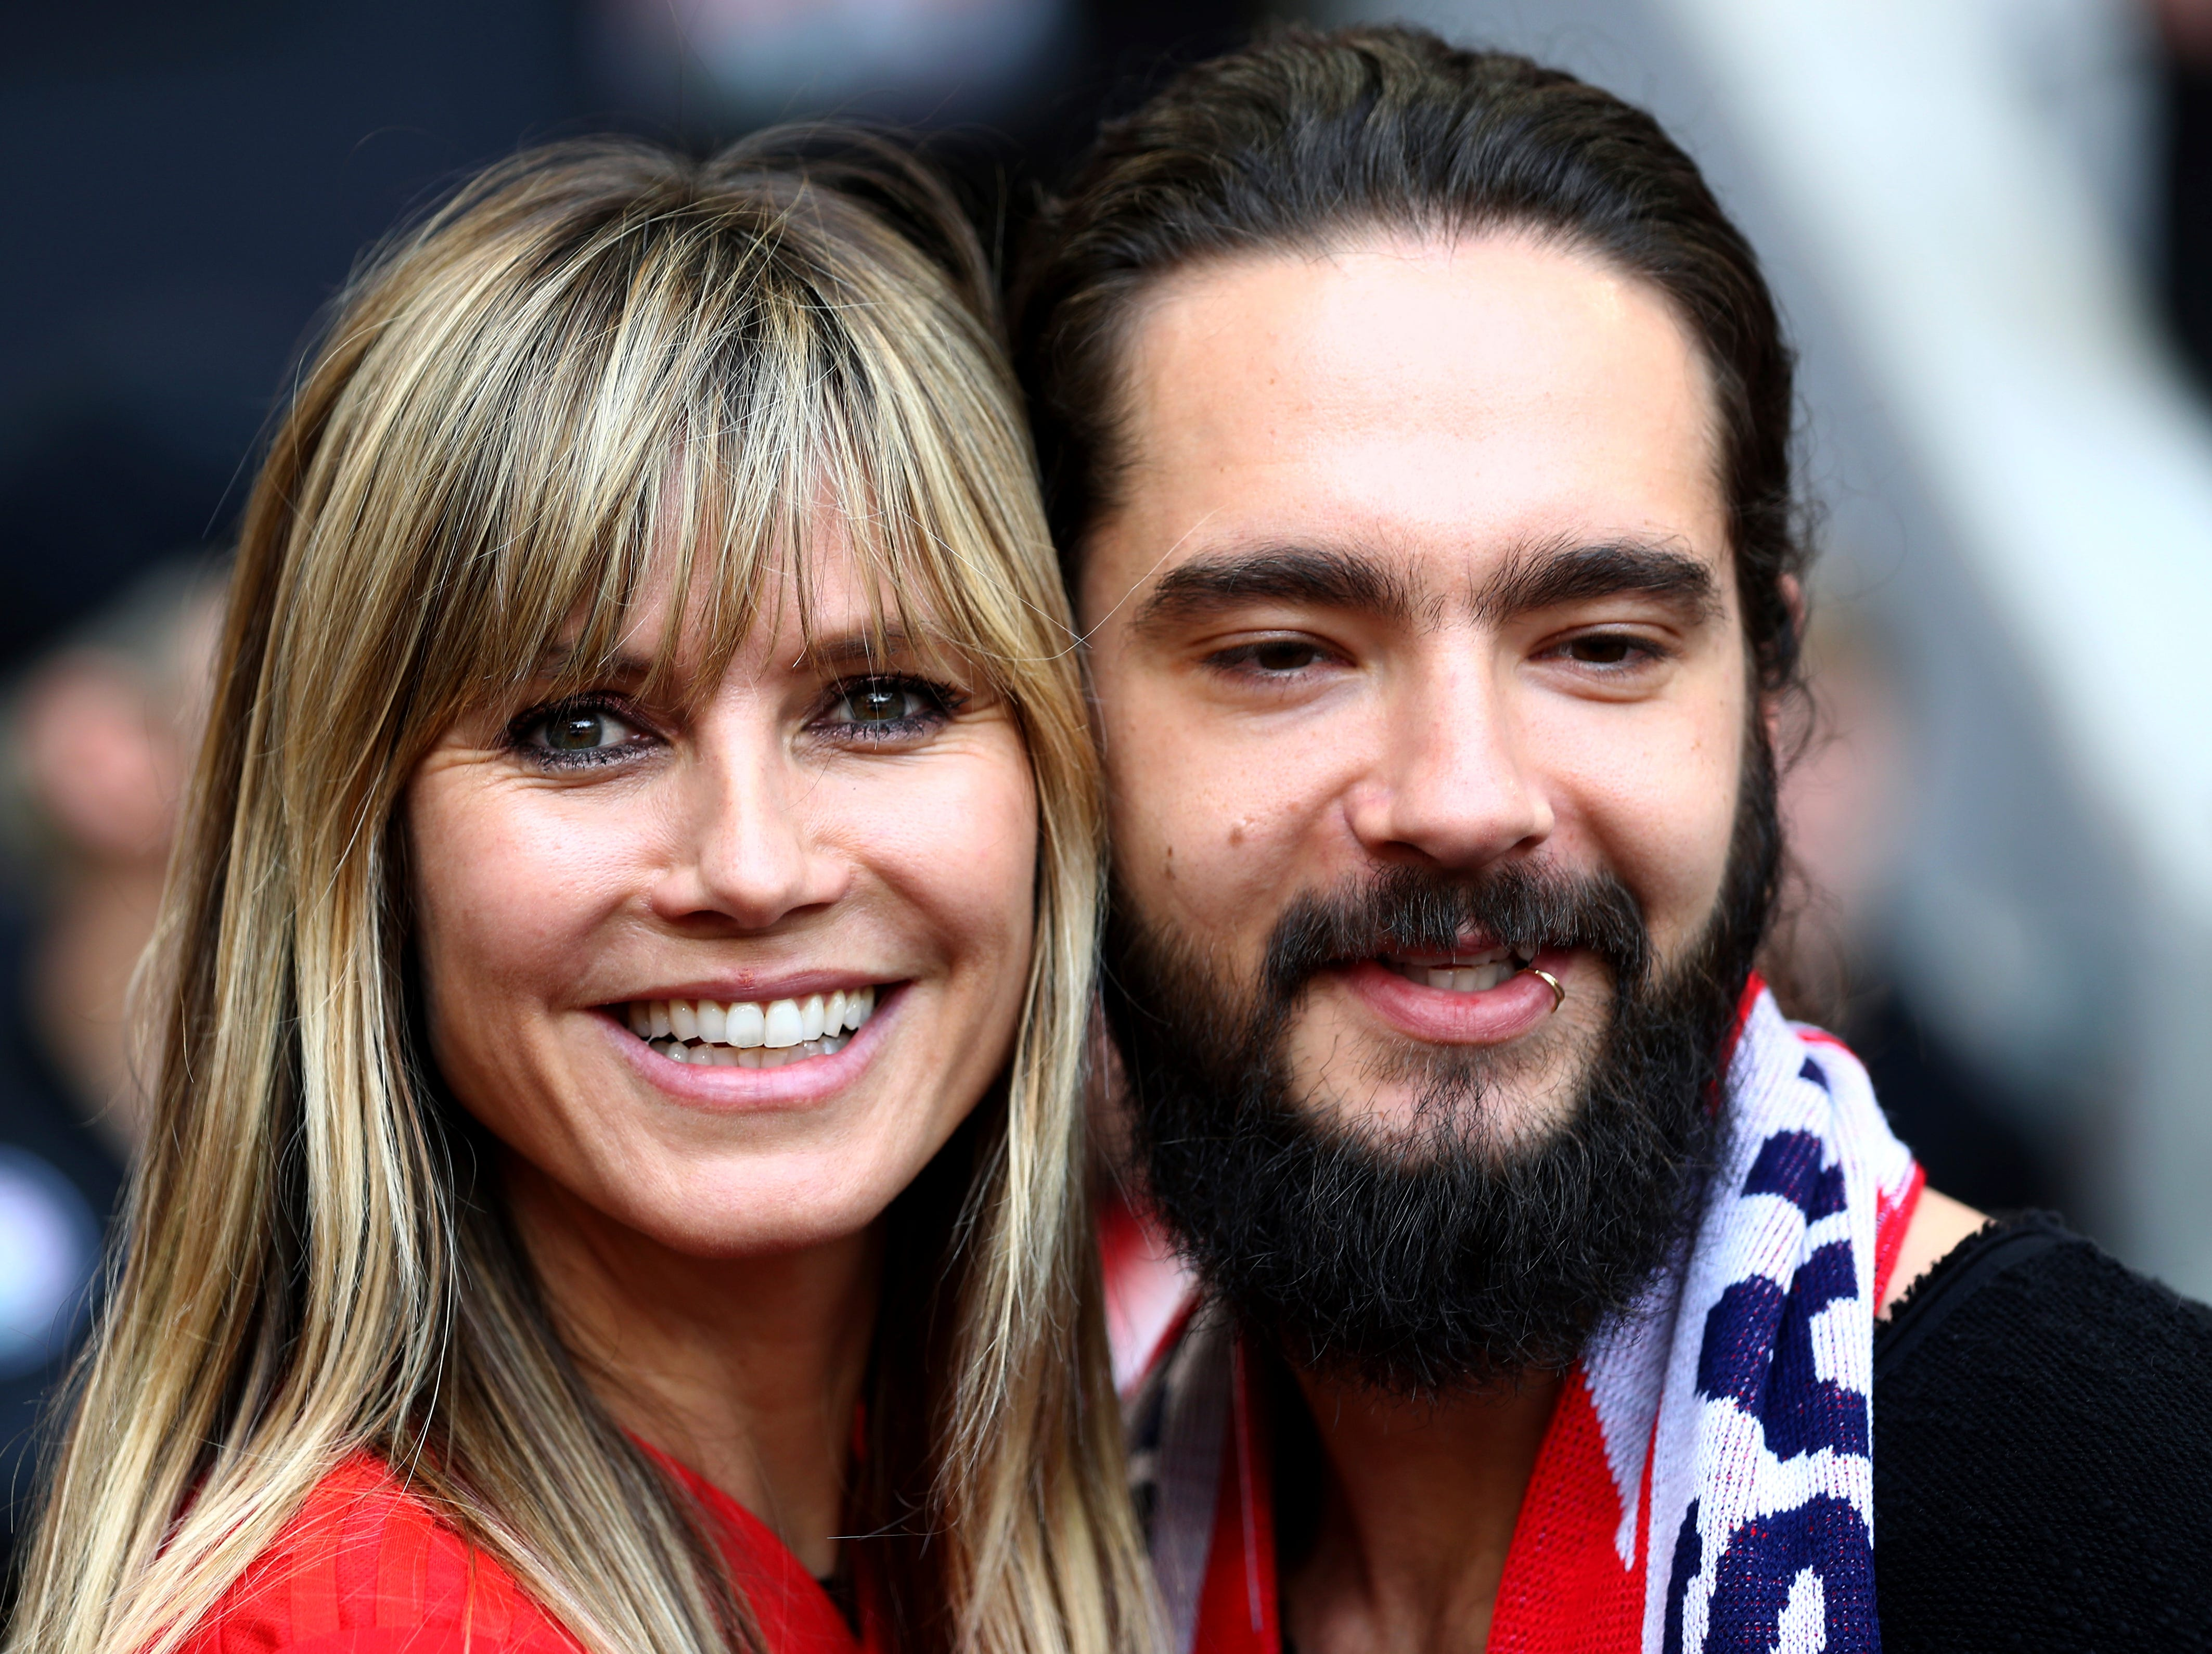 Former German model Heidi Klumm, left, and her partner and member of the band 'Tokio Hotel', Tom Kaulitz, right, pose for the media prior to the German Bundesliga soccer match between FC Bayern Munich and Eintracht Frankfurt in Munich, Germany, Saturday, May 18, 2019.